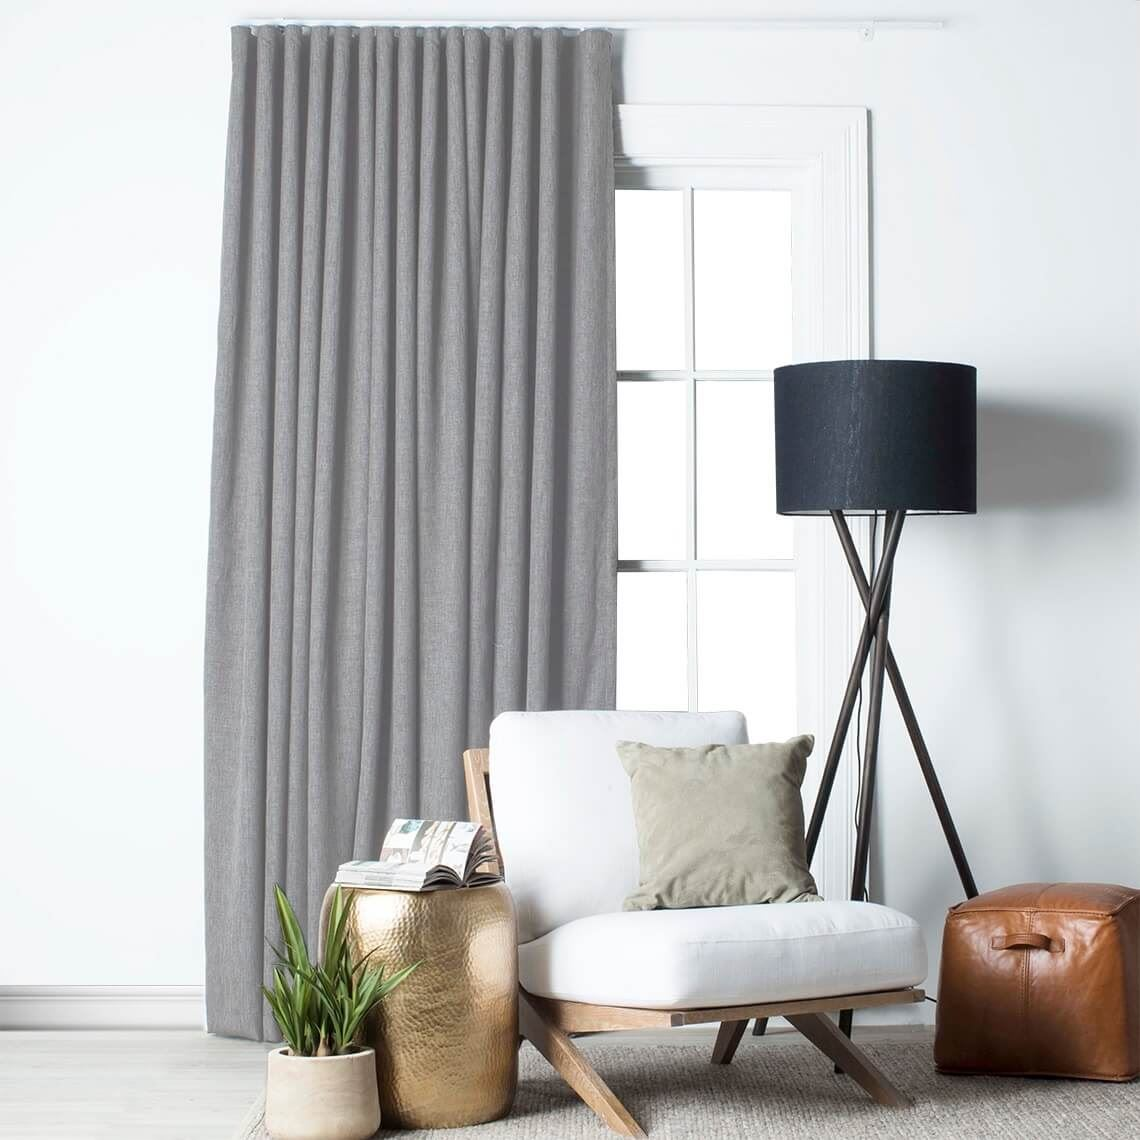 Lyndon Blockout S Fold Curtain Size W 360cm x D 1cm x H 280cm in Silver 100% Polyester Freedom by Freedom, a Curtains for sale on Style Sourcebook